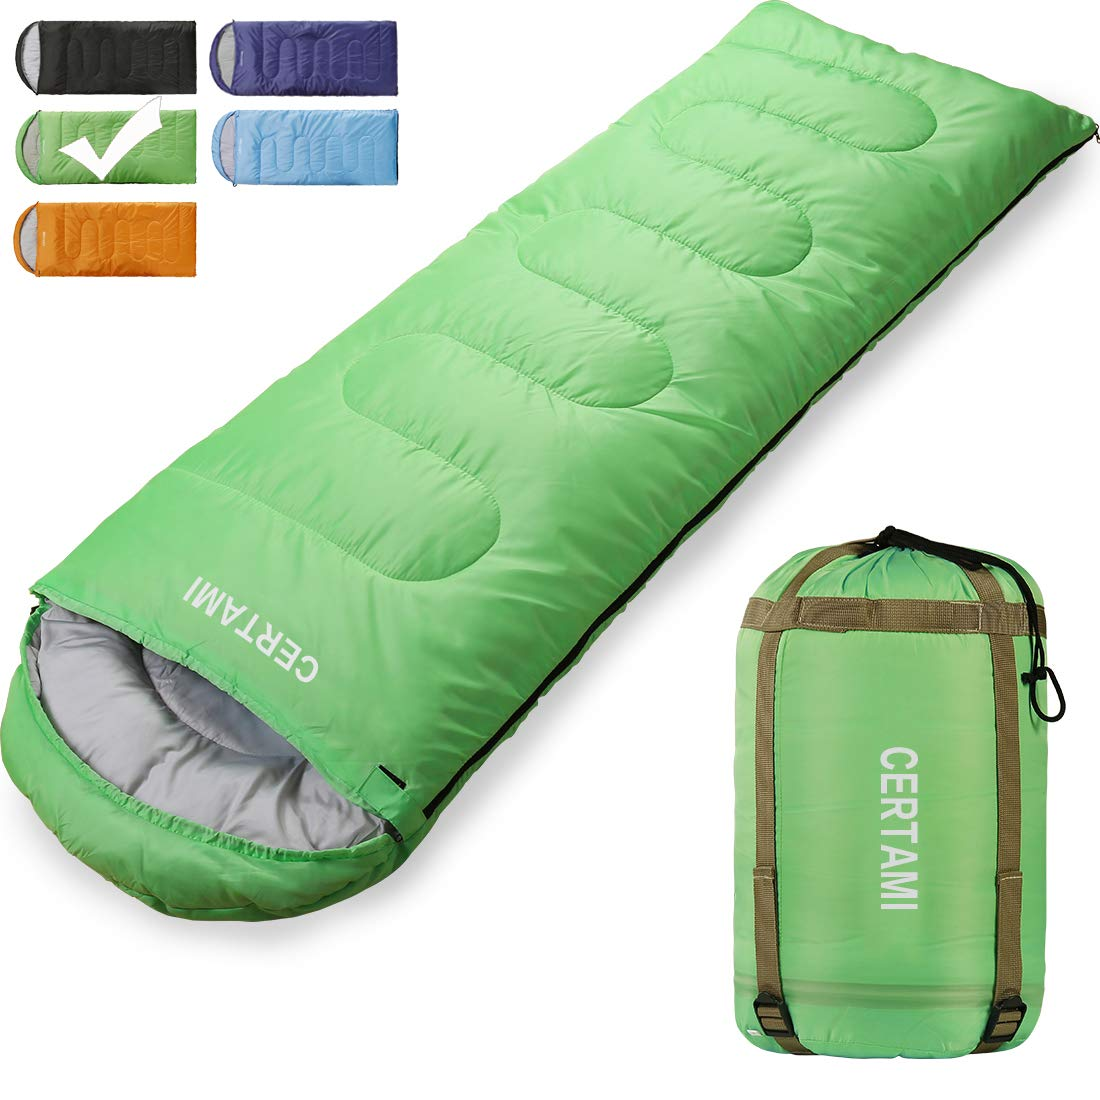 CER TAMI Sleeping Bag for Adults, Girls & Boys, Lightweight Waterproof Compact, Great for 4 Season Warm & Cold Weather, Perfect for Outdoor Backpacking, Camping, Hiking. (Green/Right Zip) by CER TAMI